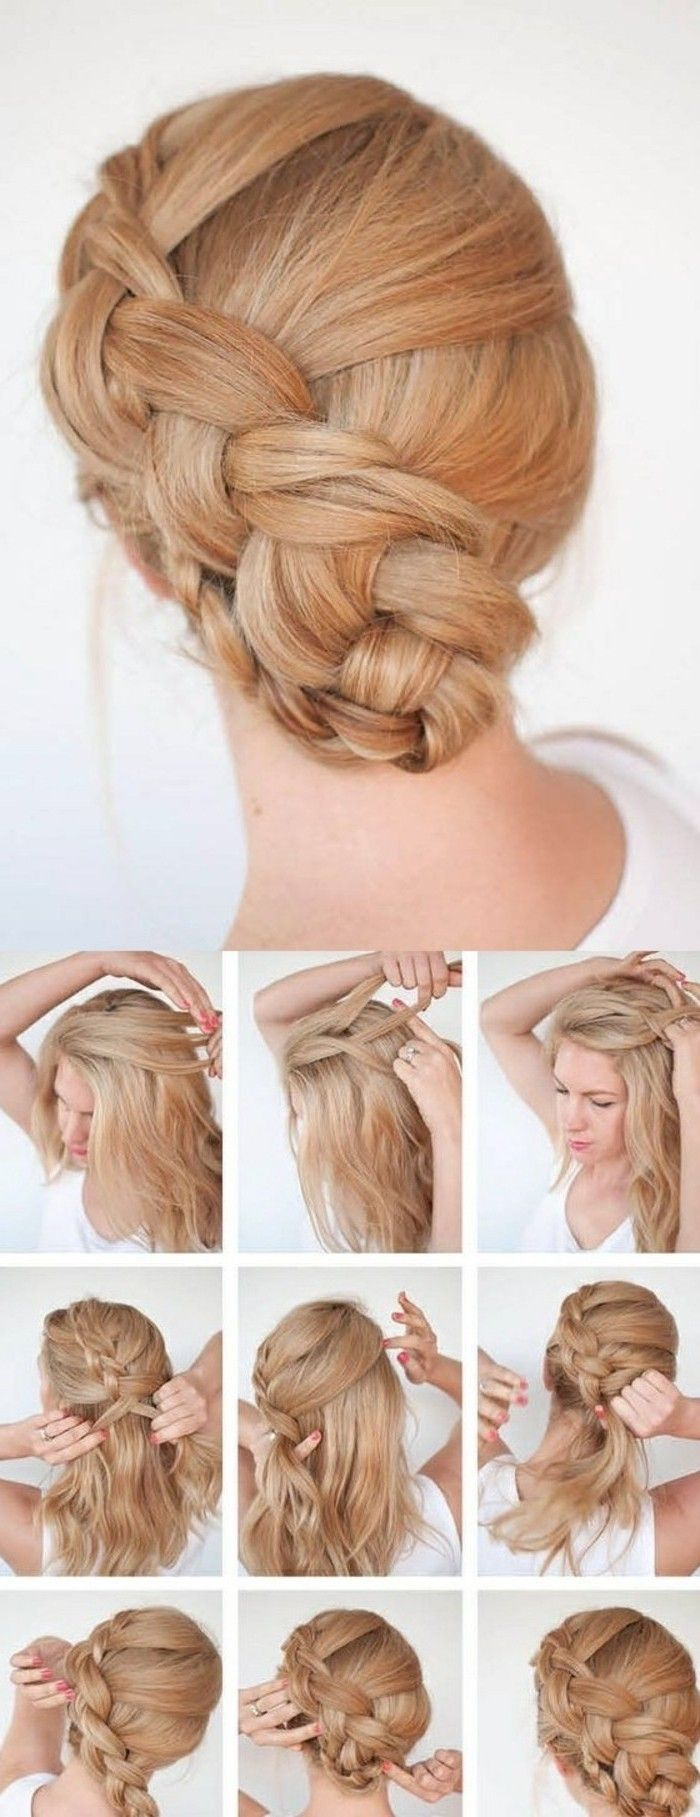 1001 + ideas for beautiful hairstyles + DIY instructions ...